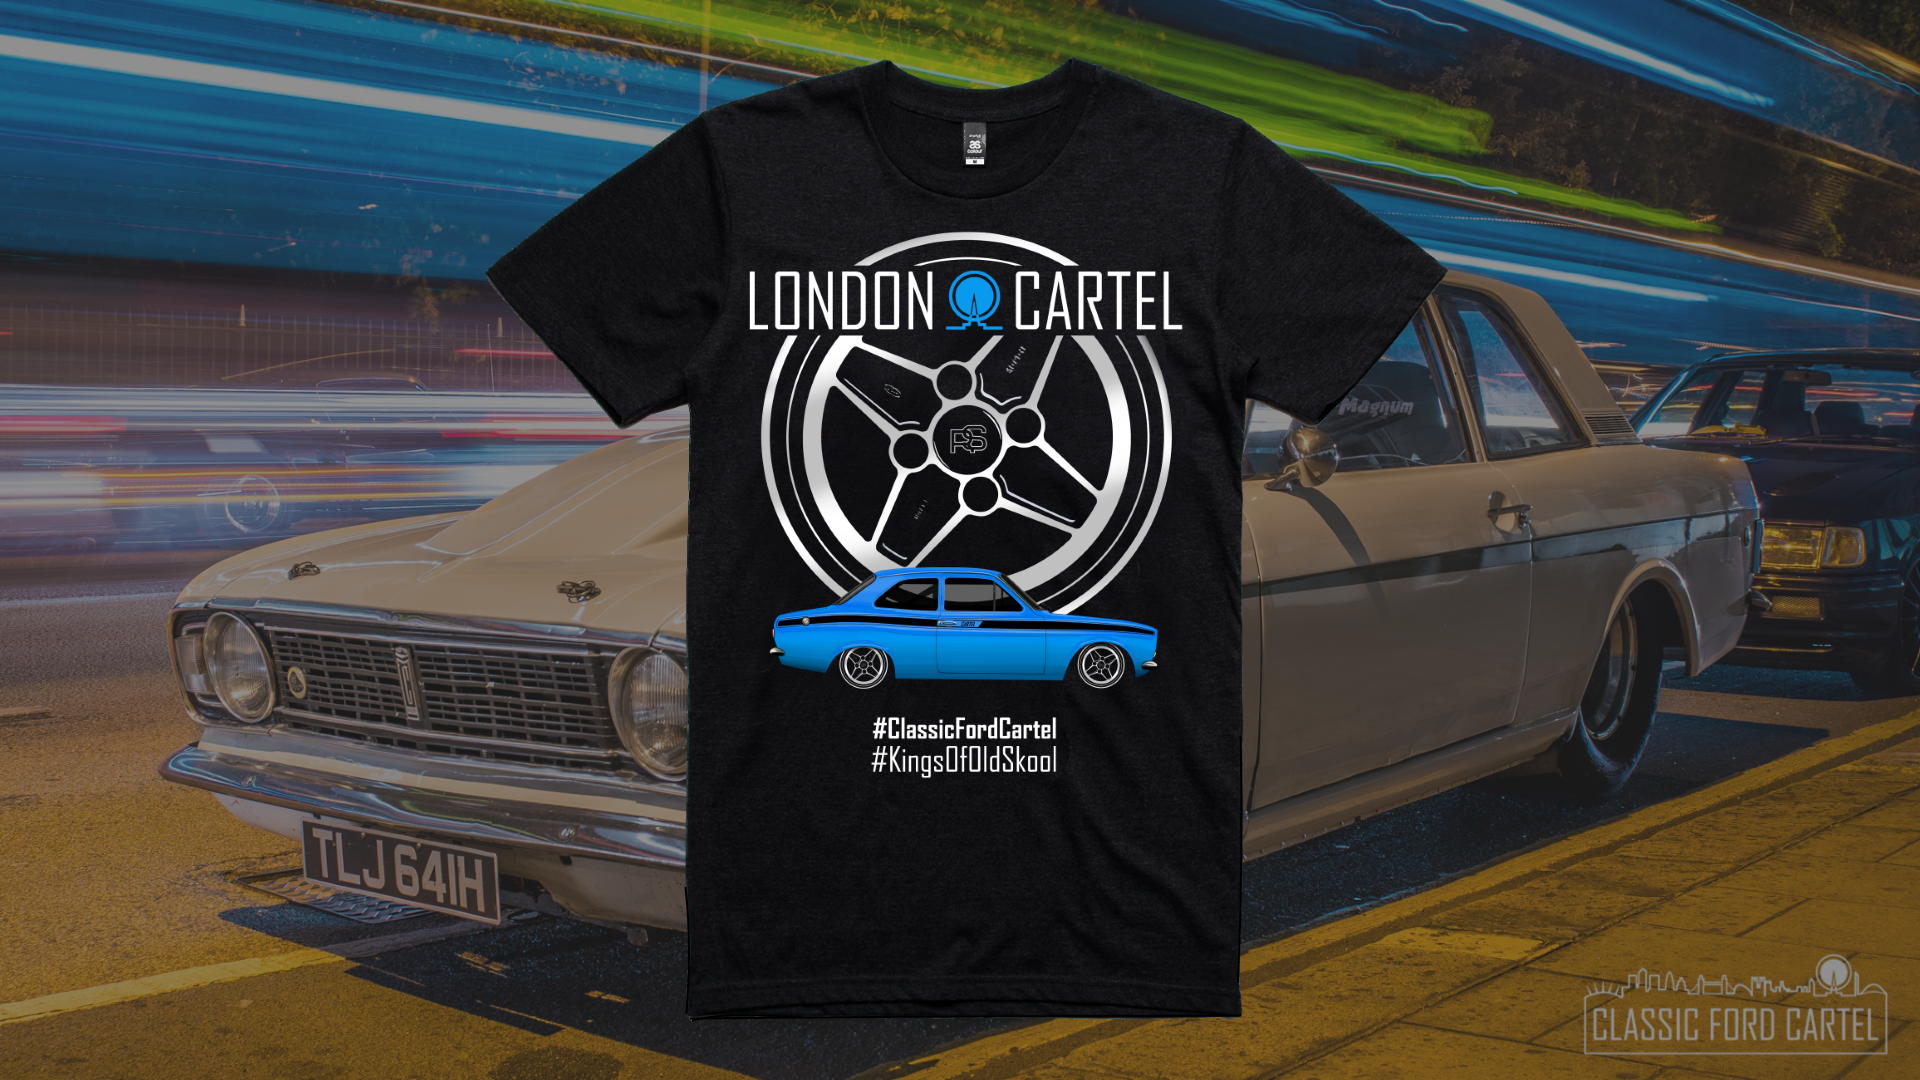 Classic Ford Cartel T Shirt LCT005 – London Cartel